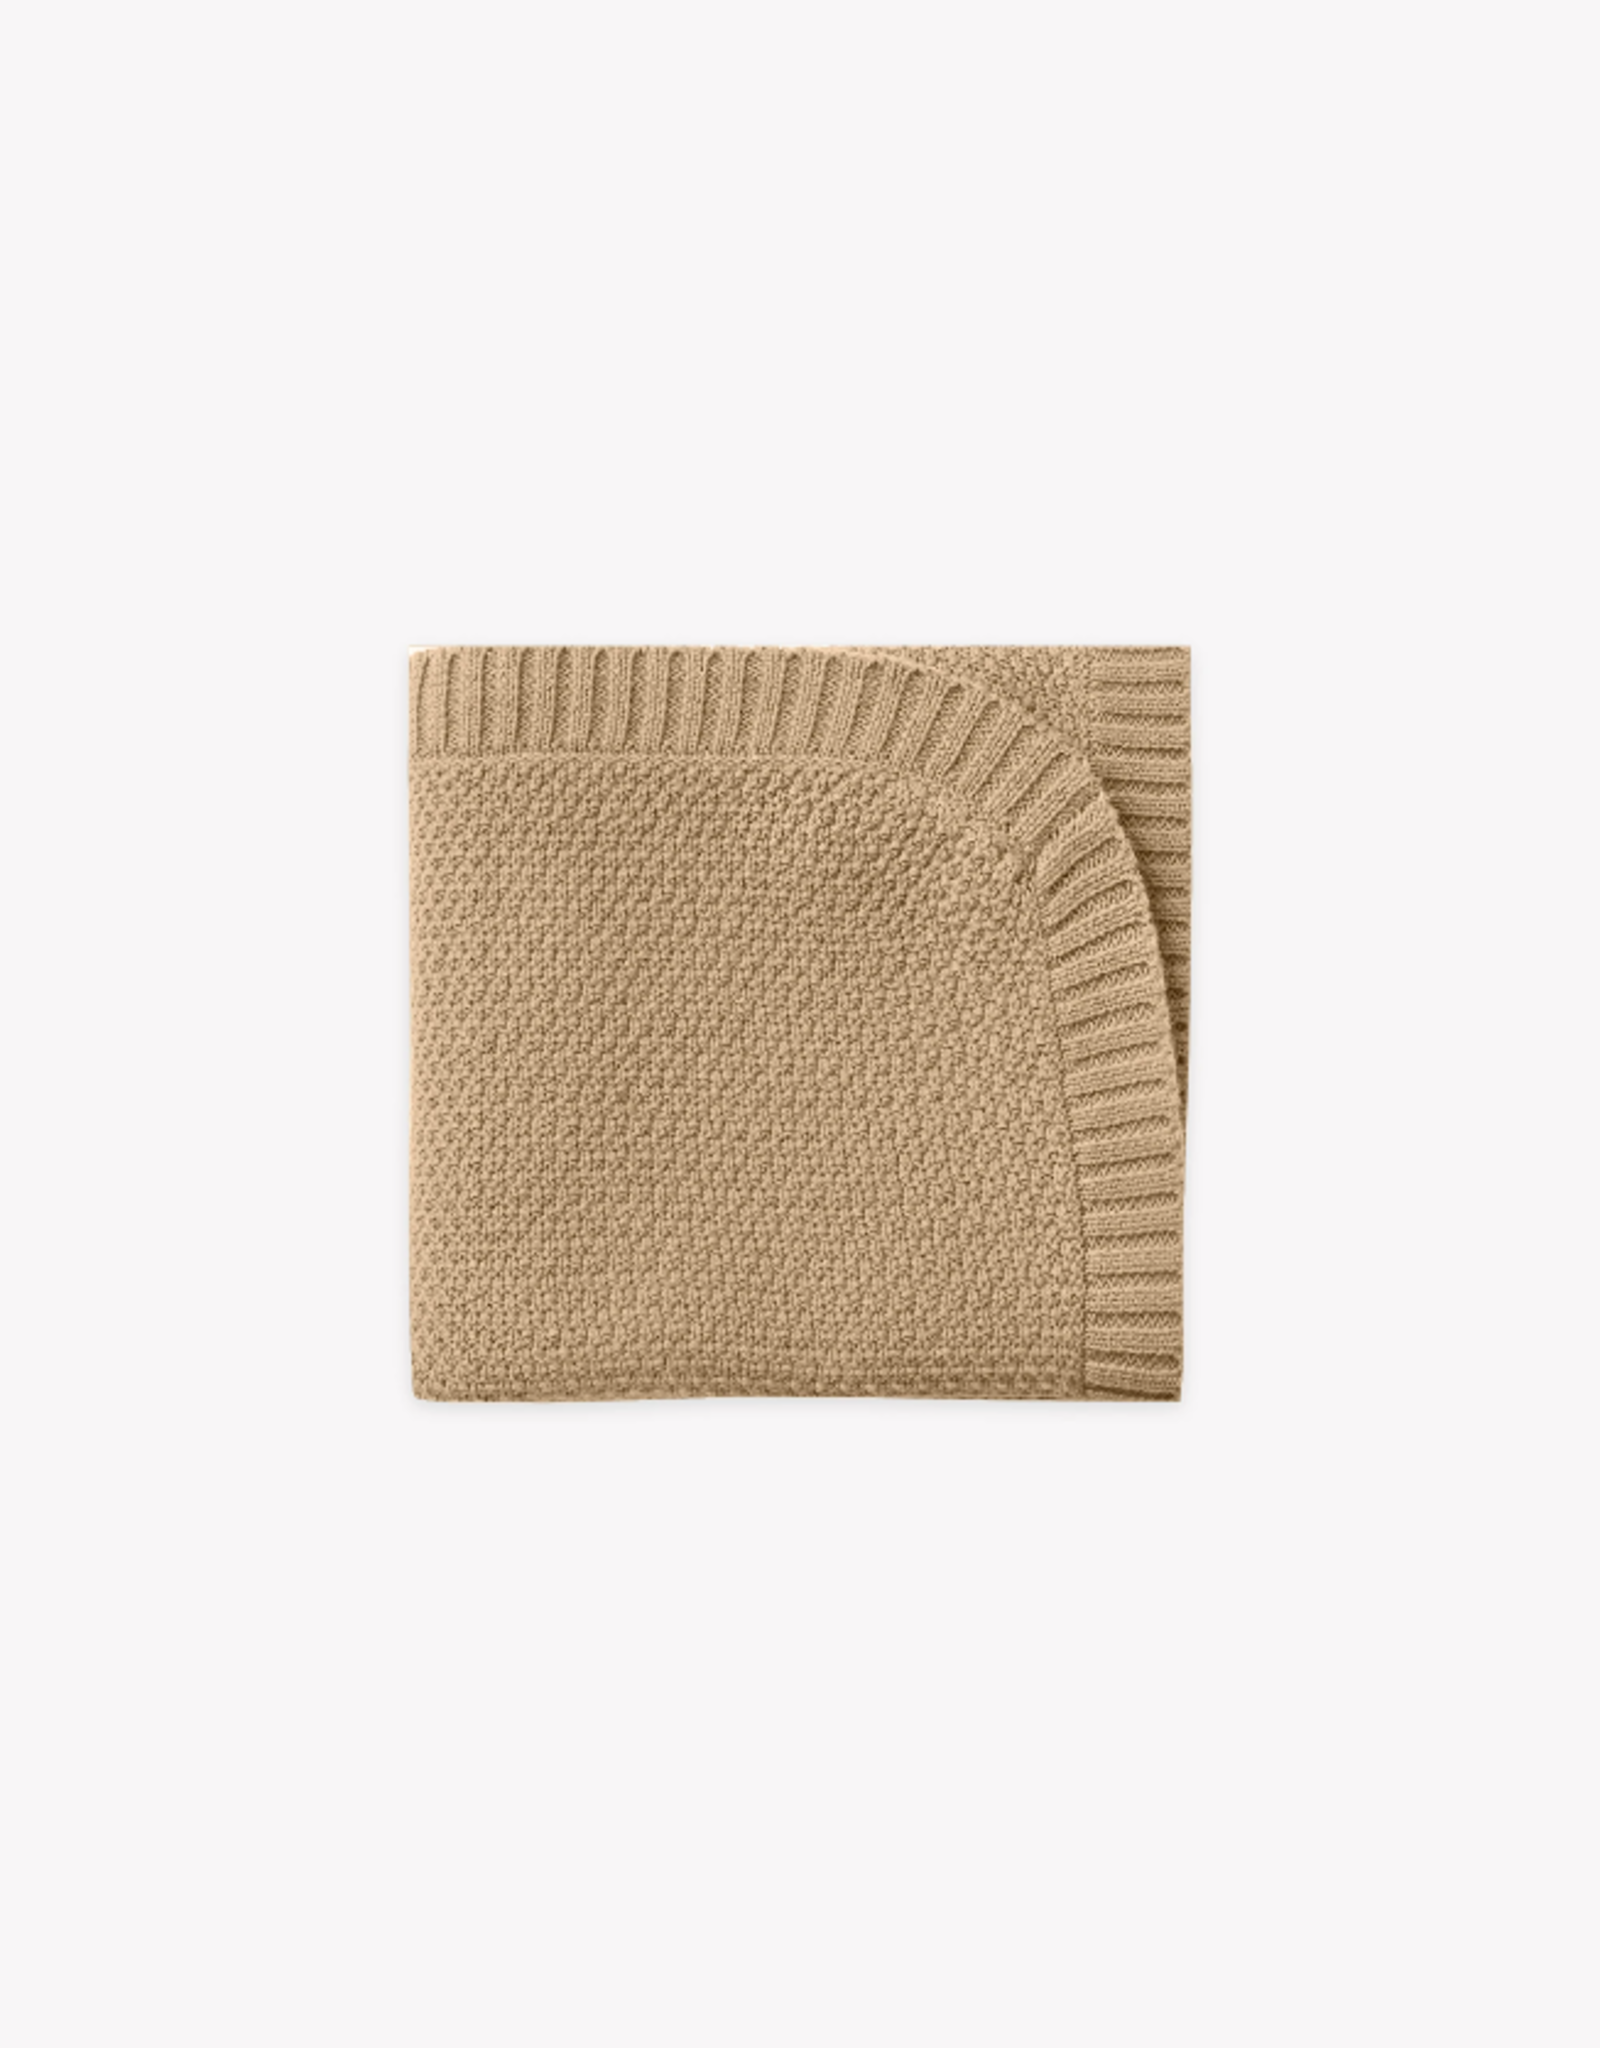 Quincy Mae Quincy Mae - Chunky Knit Baby Blanket